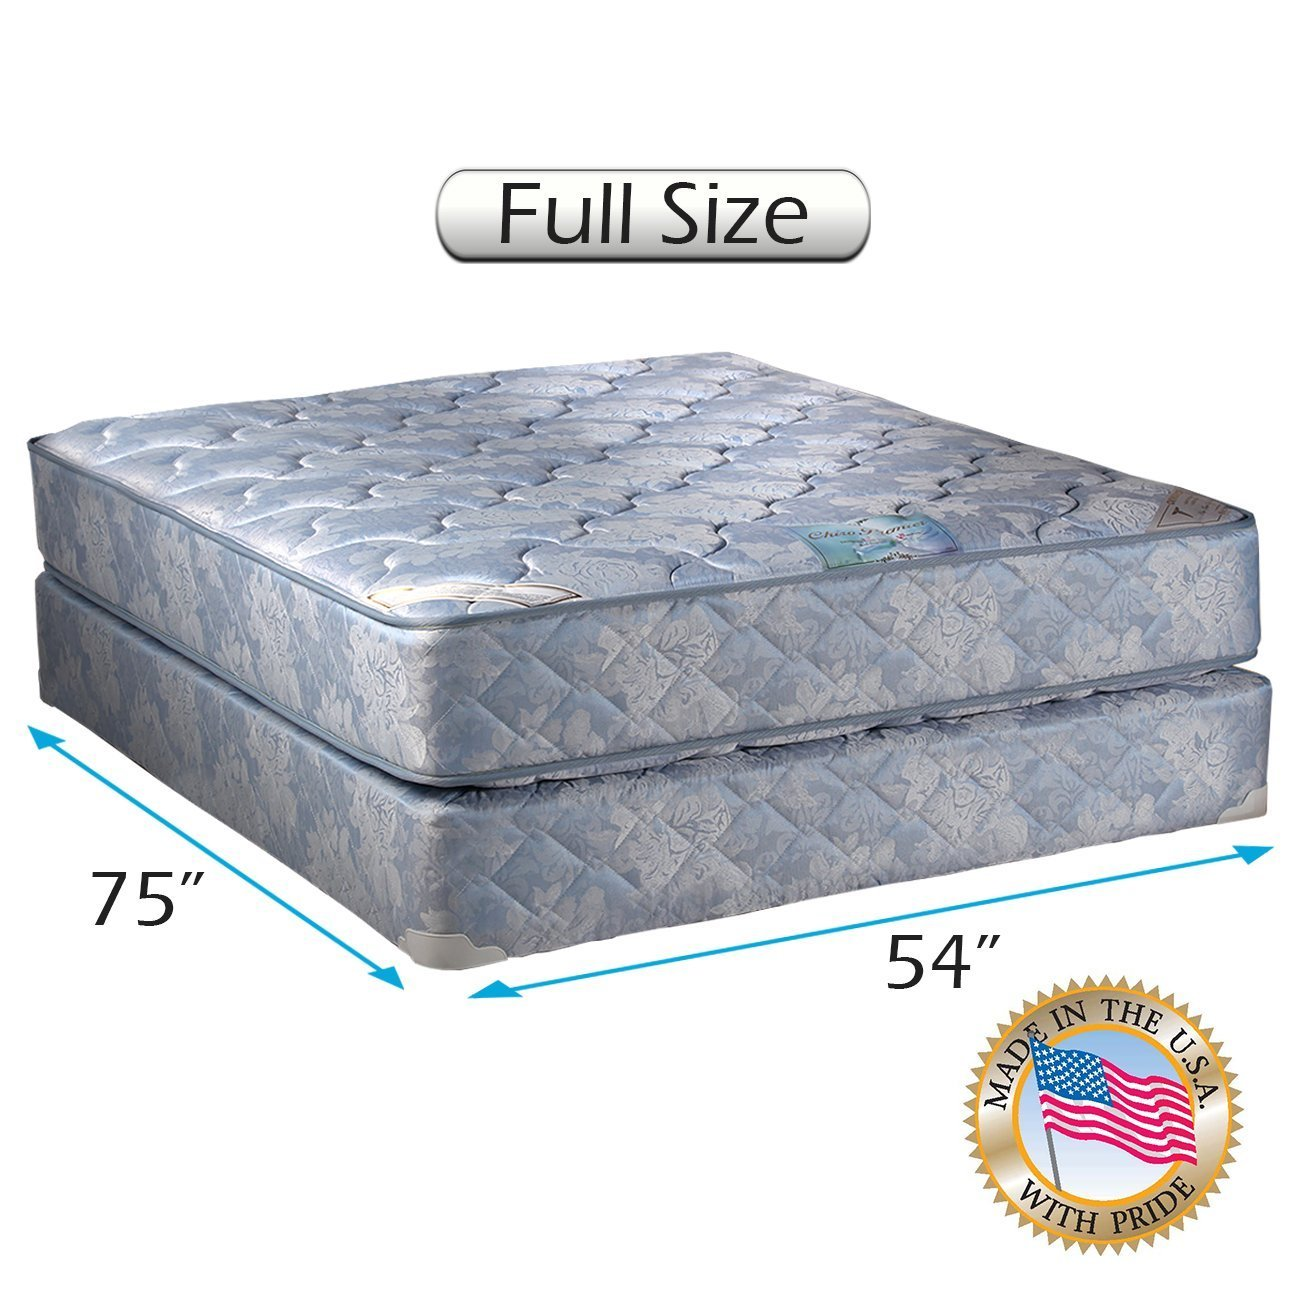 Chiro Premier Orthopedic (Blue Color) Full Size Mattress and Box Spring Set - Fully Assembled, Good for your back, Superior Quality, Long Lasting and 2 Sided By - Dream Solutions USA by Dream Solutions USA